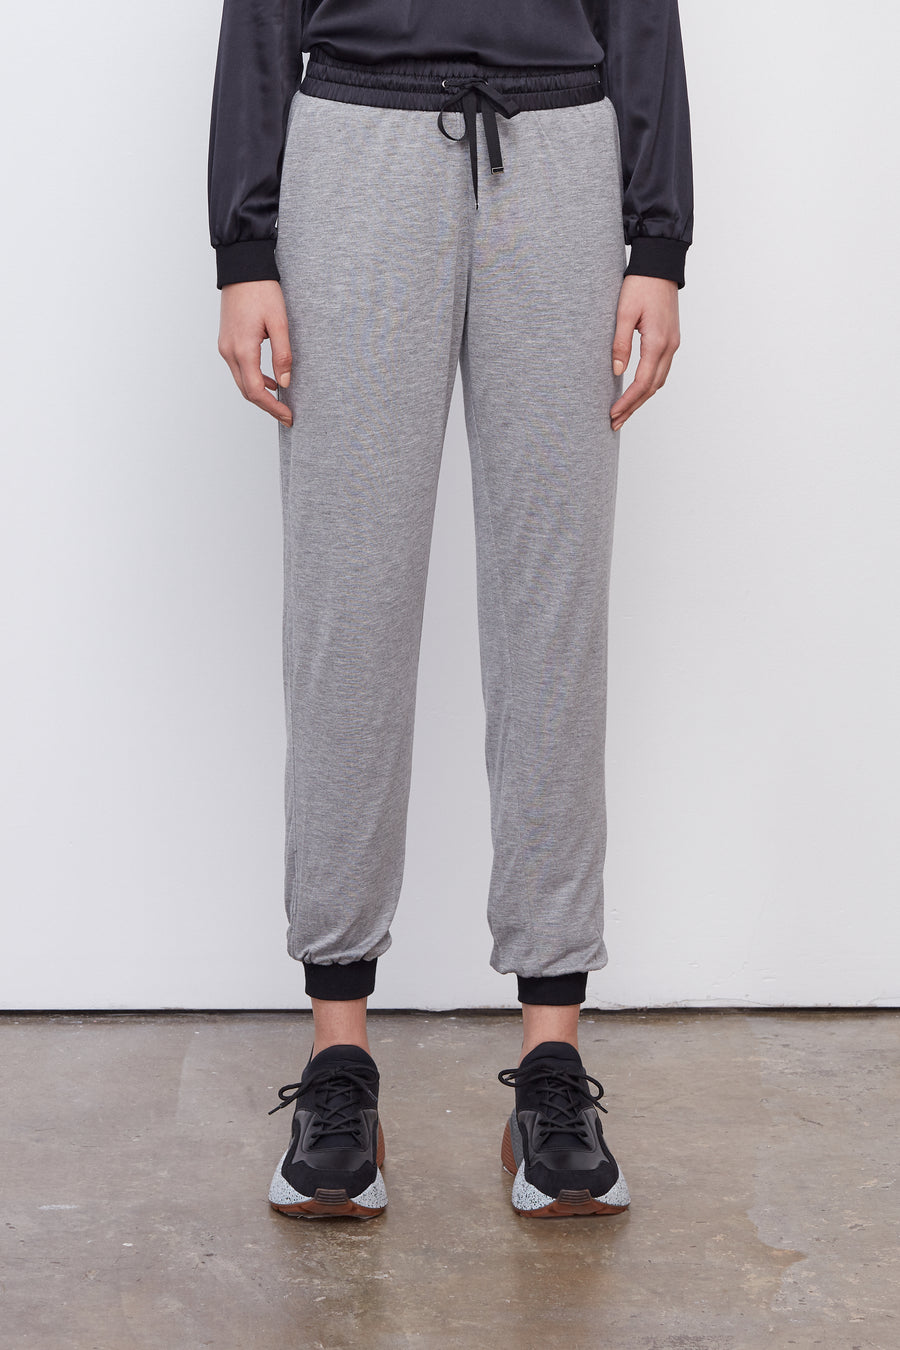 The Jogger Black/Grey